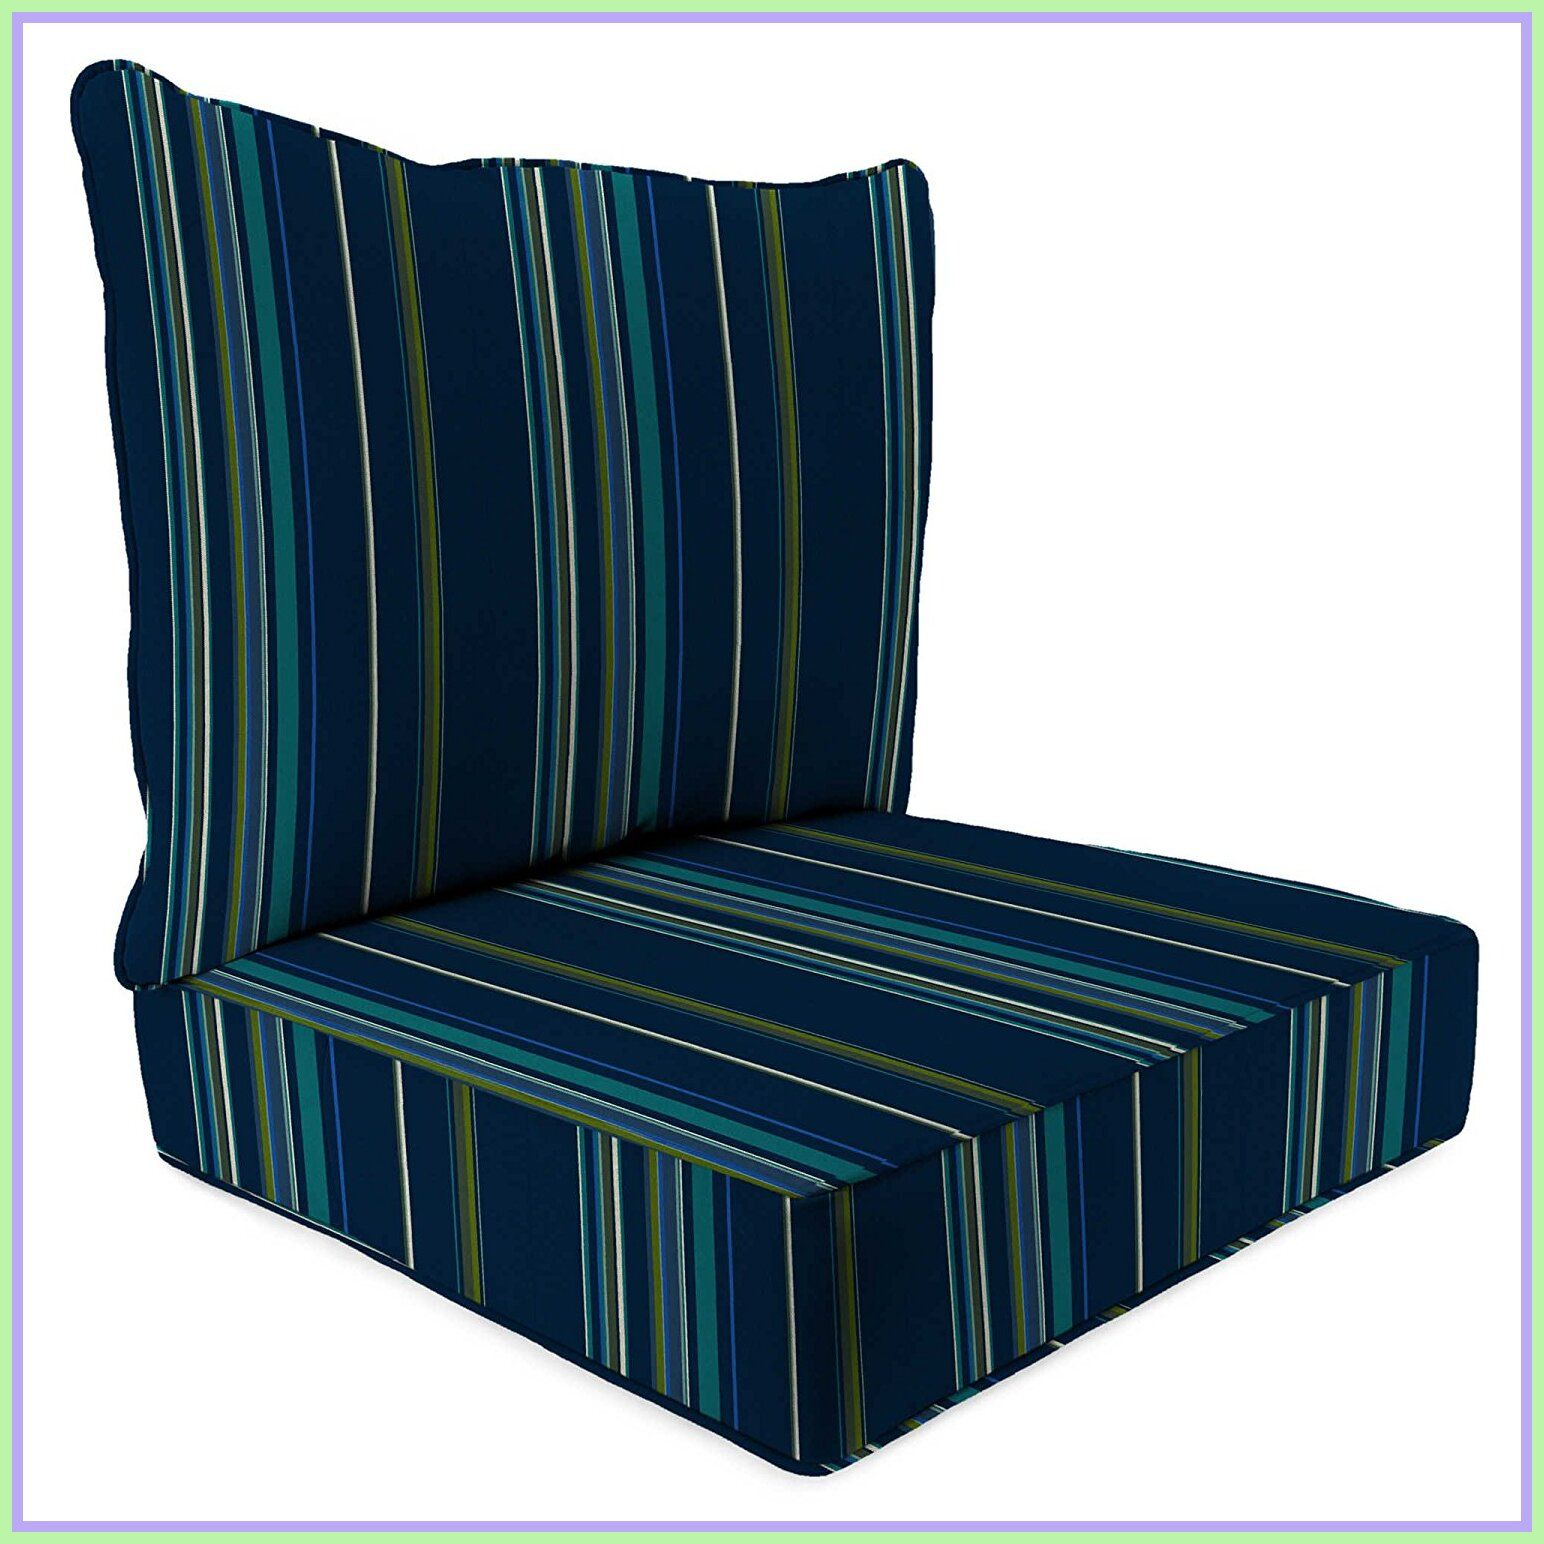 38 Reference Of Patio Replacement Cushions Cheap In 2020 Patio Cushions Patio Cushions Outdoor Deep Seating